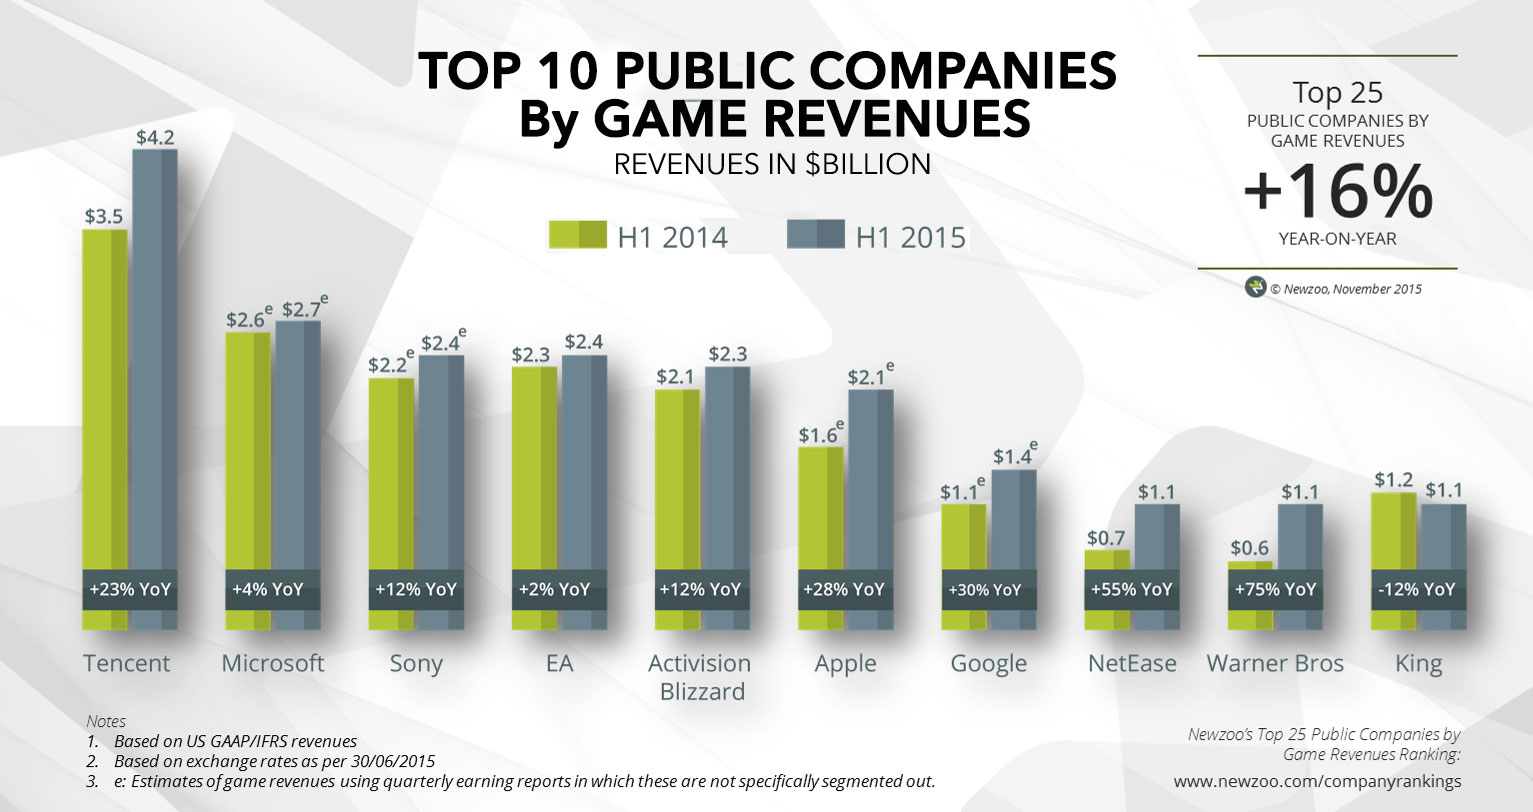 top-gaming-companies-by-revenues-2015-list@2x